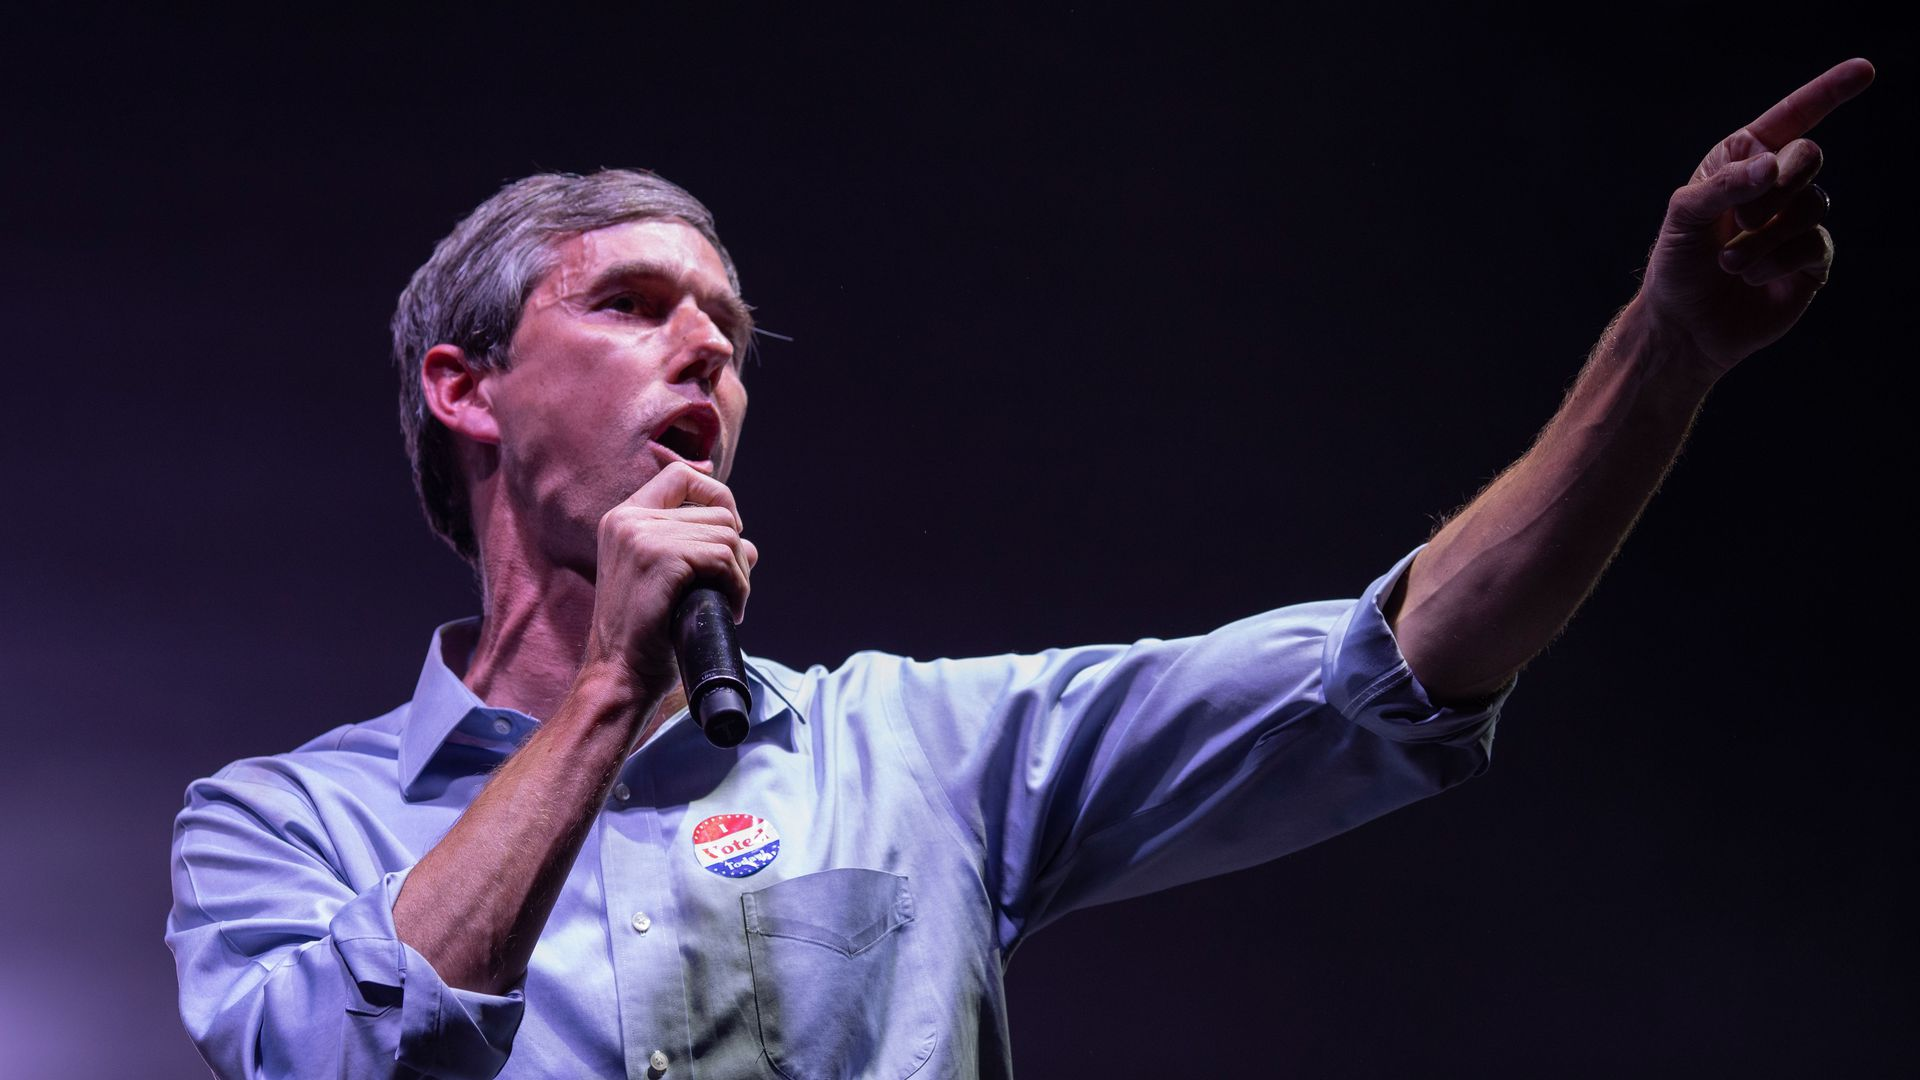 Beto O'Rourke standing on stage with a microphone in his hand